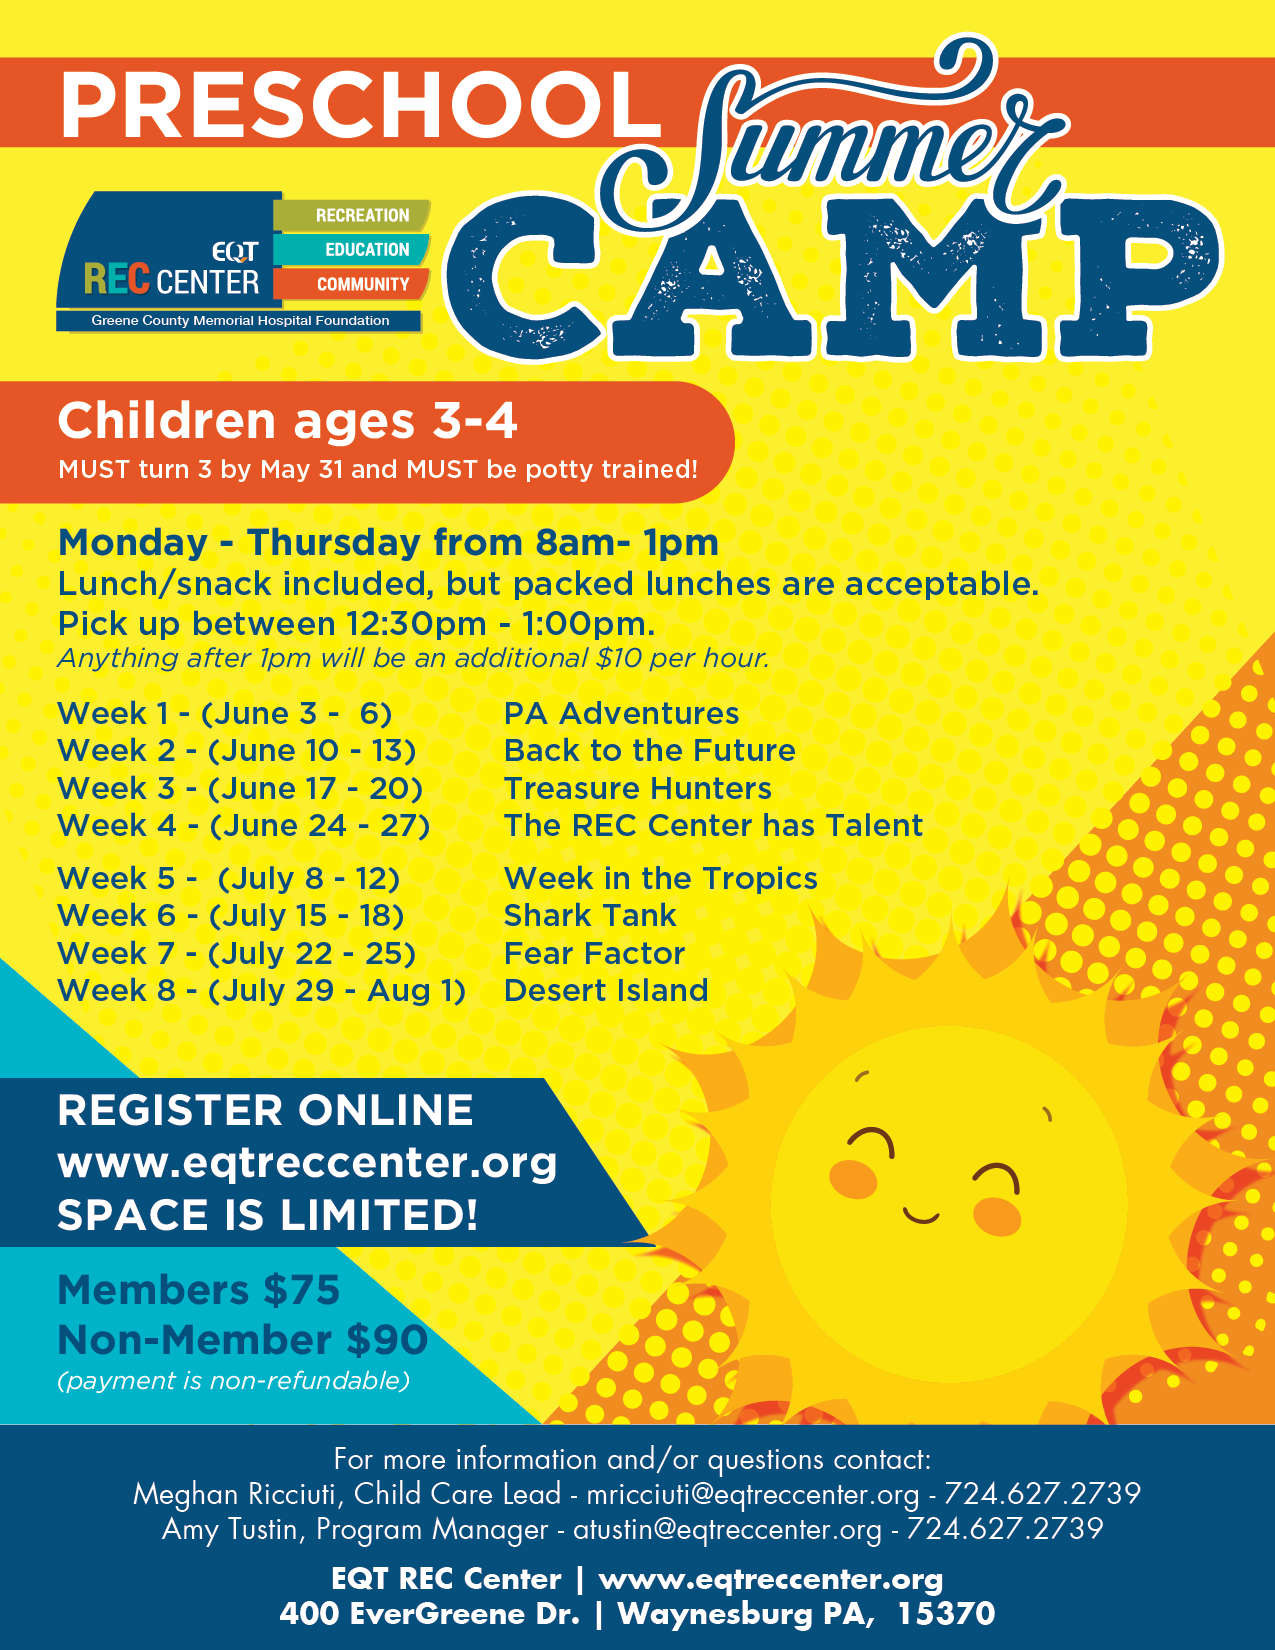 EQT REC Preschool Summer Camps 2019-02 - EQT REC Center